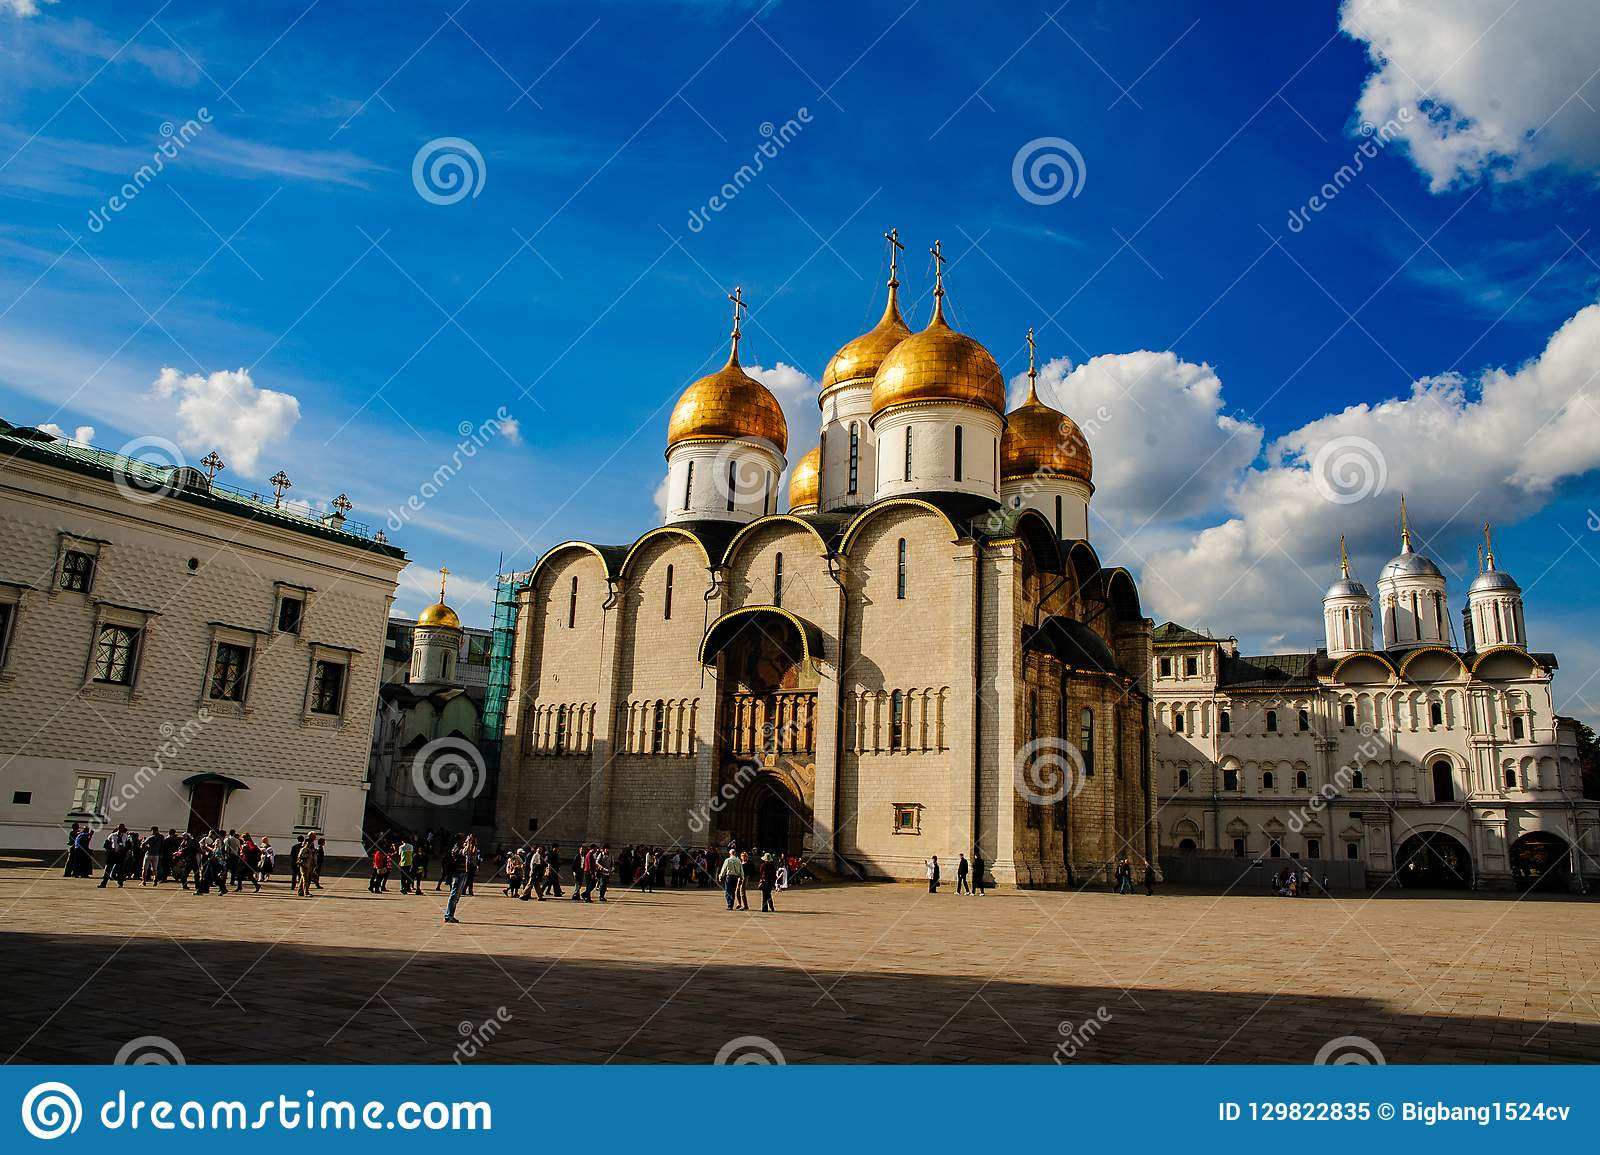 The Uspensky cathedral in the Kremlin, Moscow